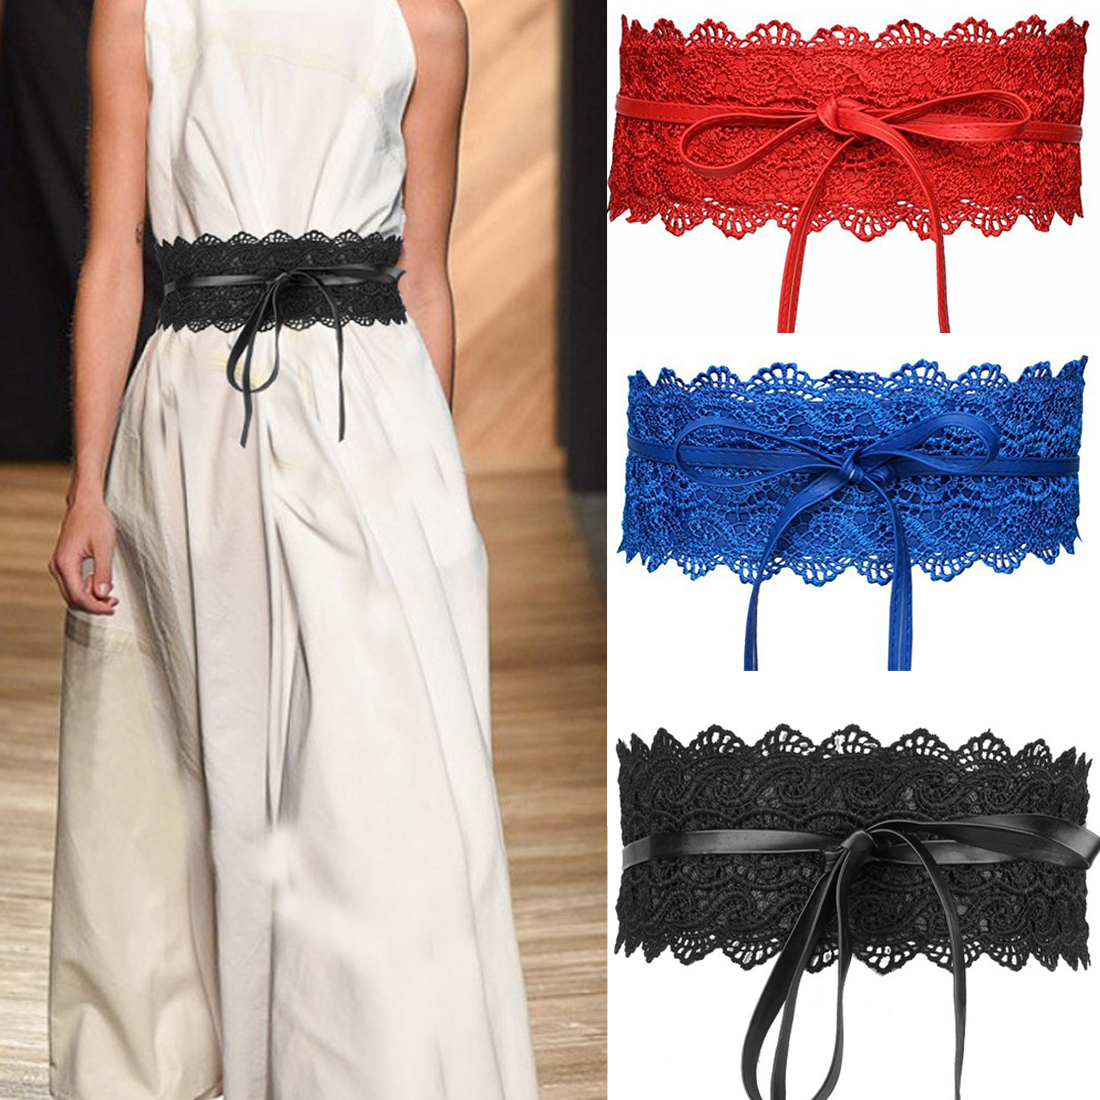 2019 Hot Wide Lace Corset Waist Belt Solid Color  Slim Fit Belts Bowknot  Faux Leather Lace Cummerbunds Female Dress Waistband